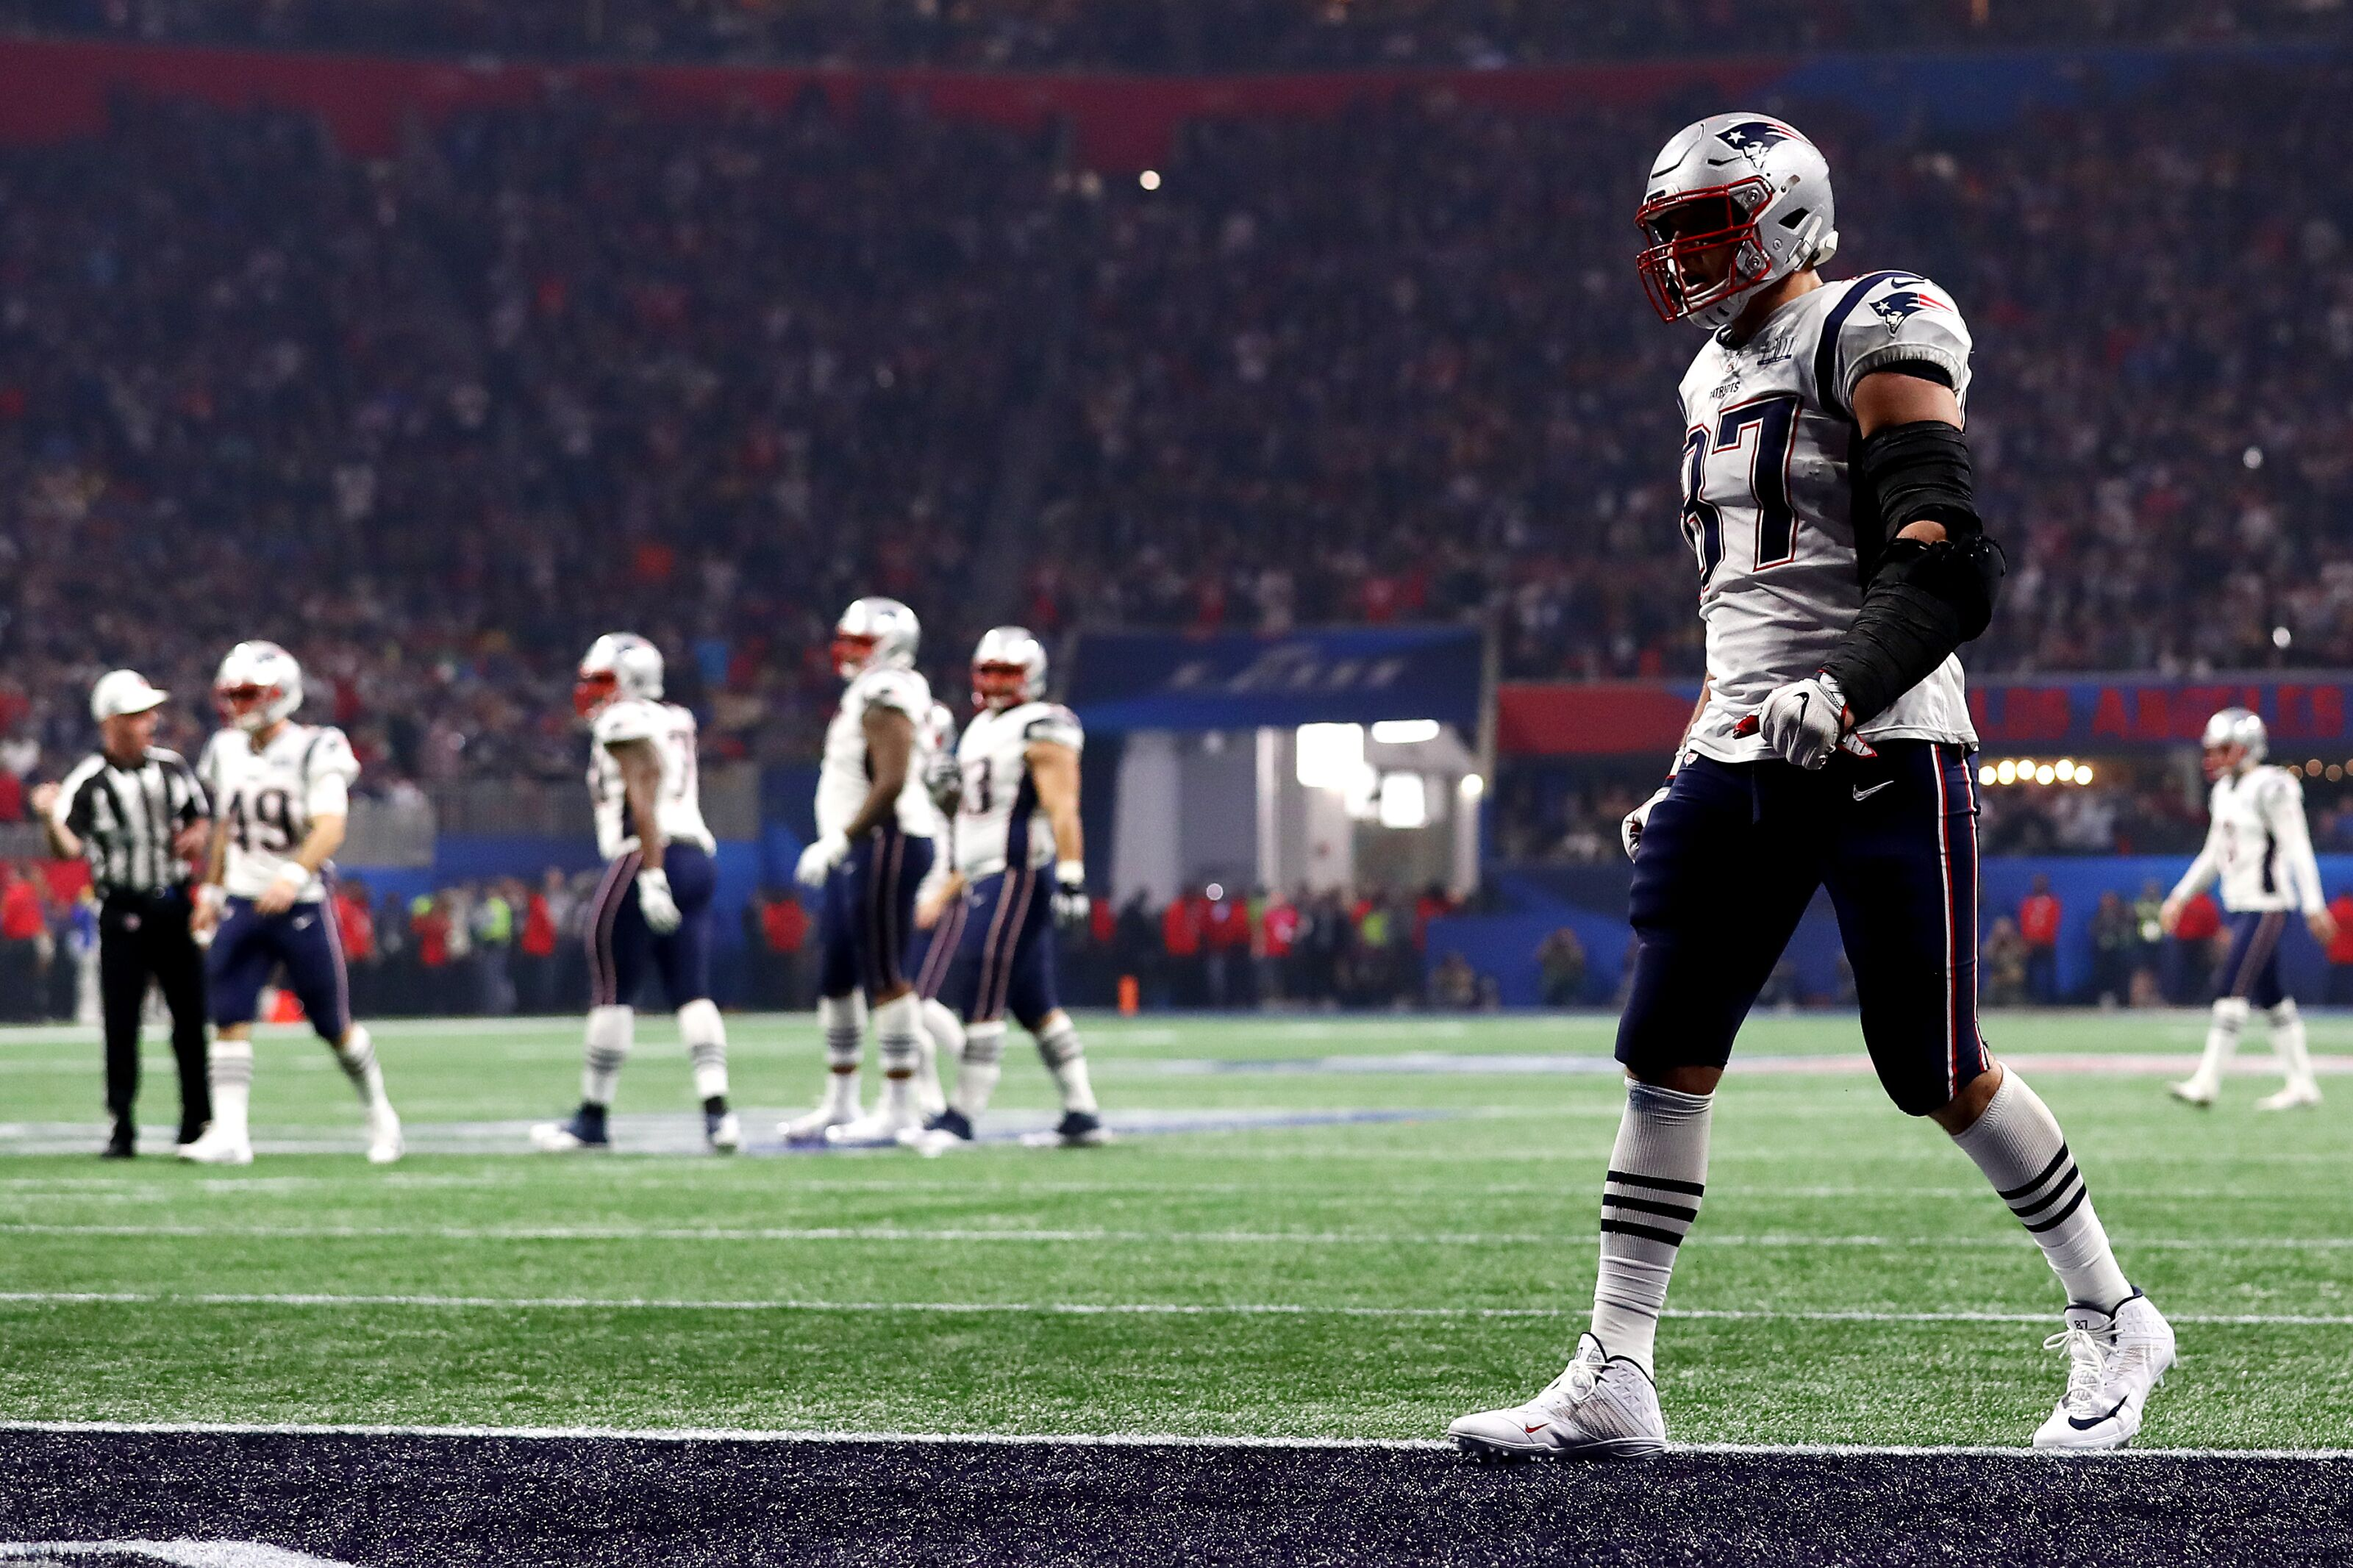 New England Patriots: Rob Gronkowski is not coming back and its okay